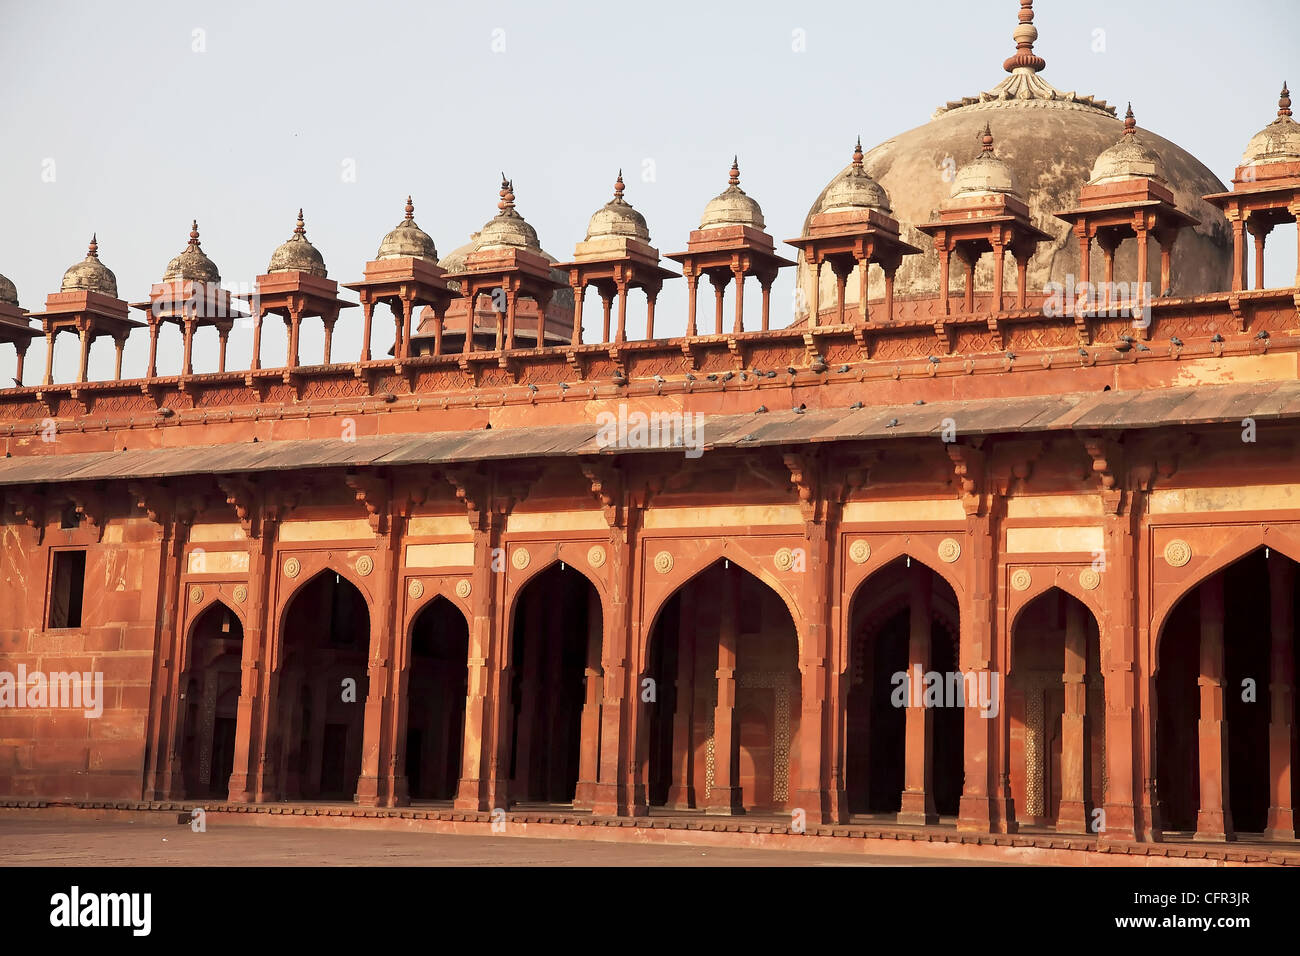 jama masjid fatehpur sikri stock photo 44148351 alamy